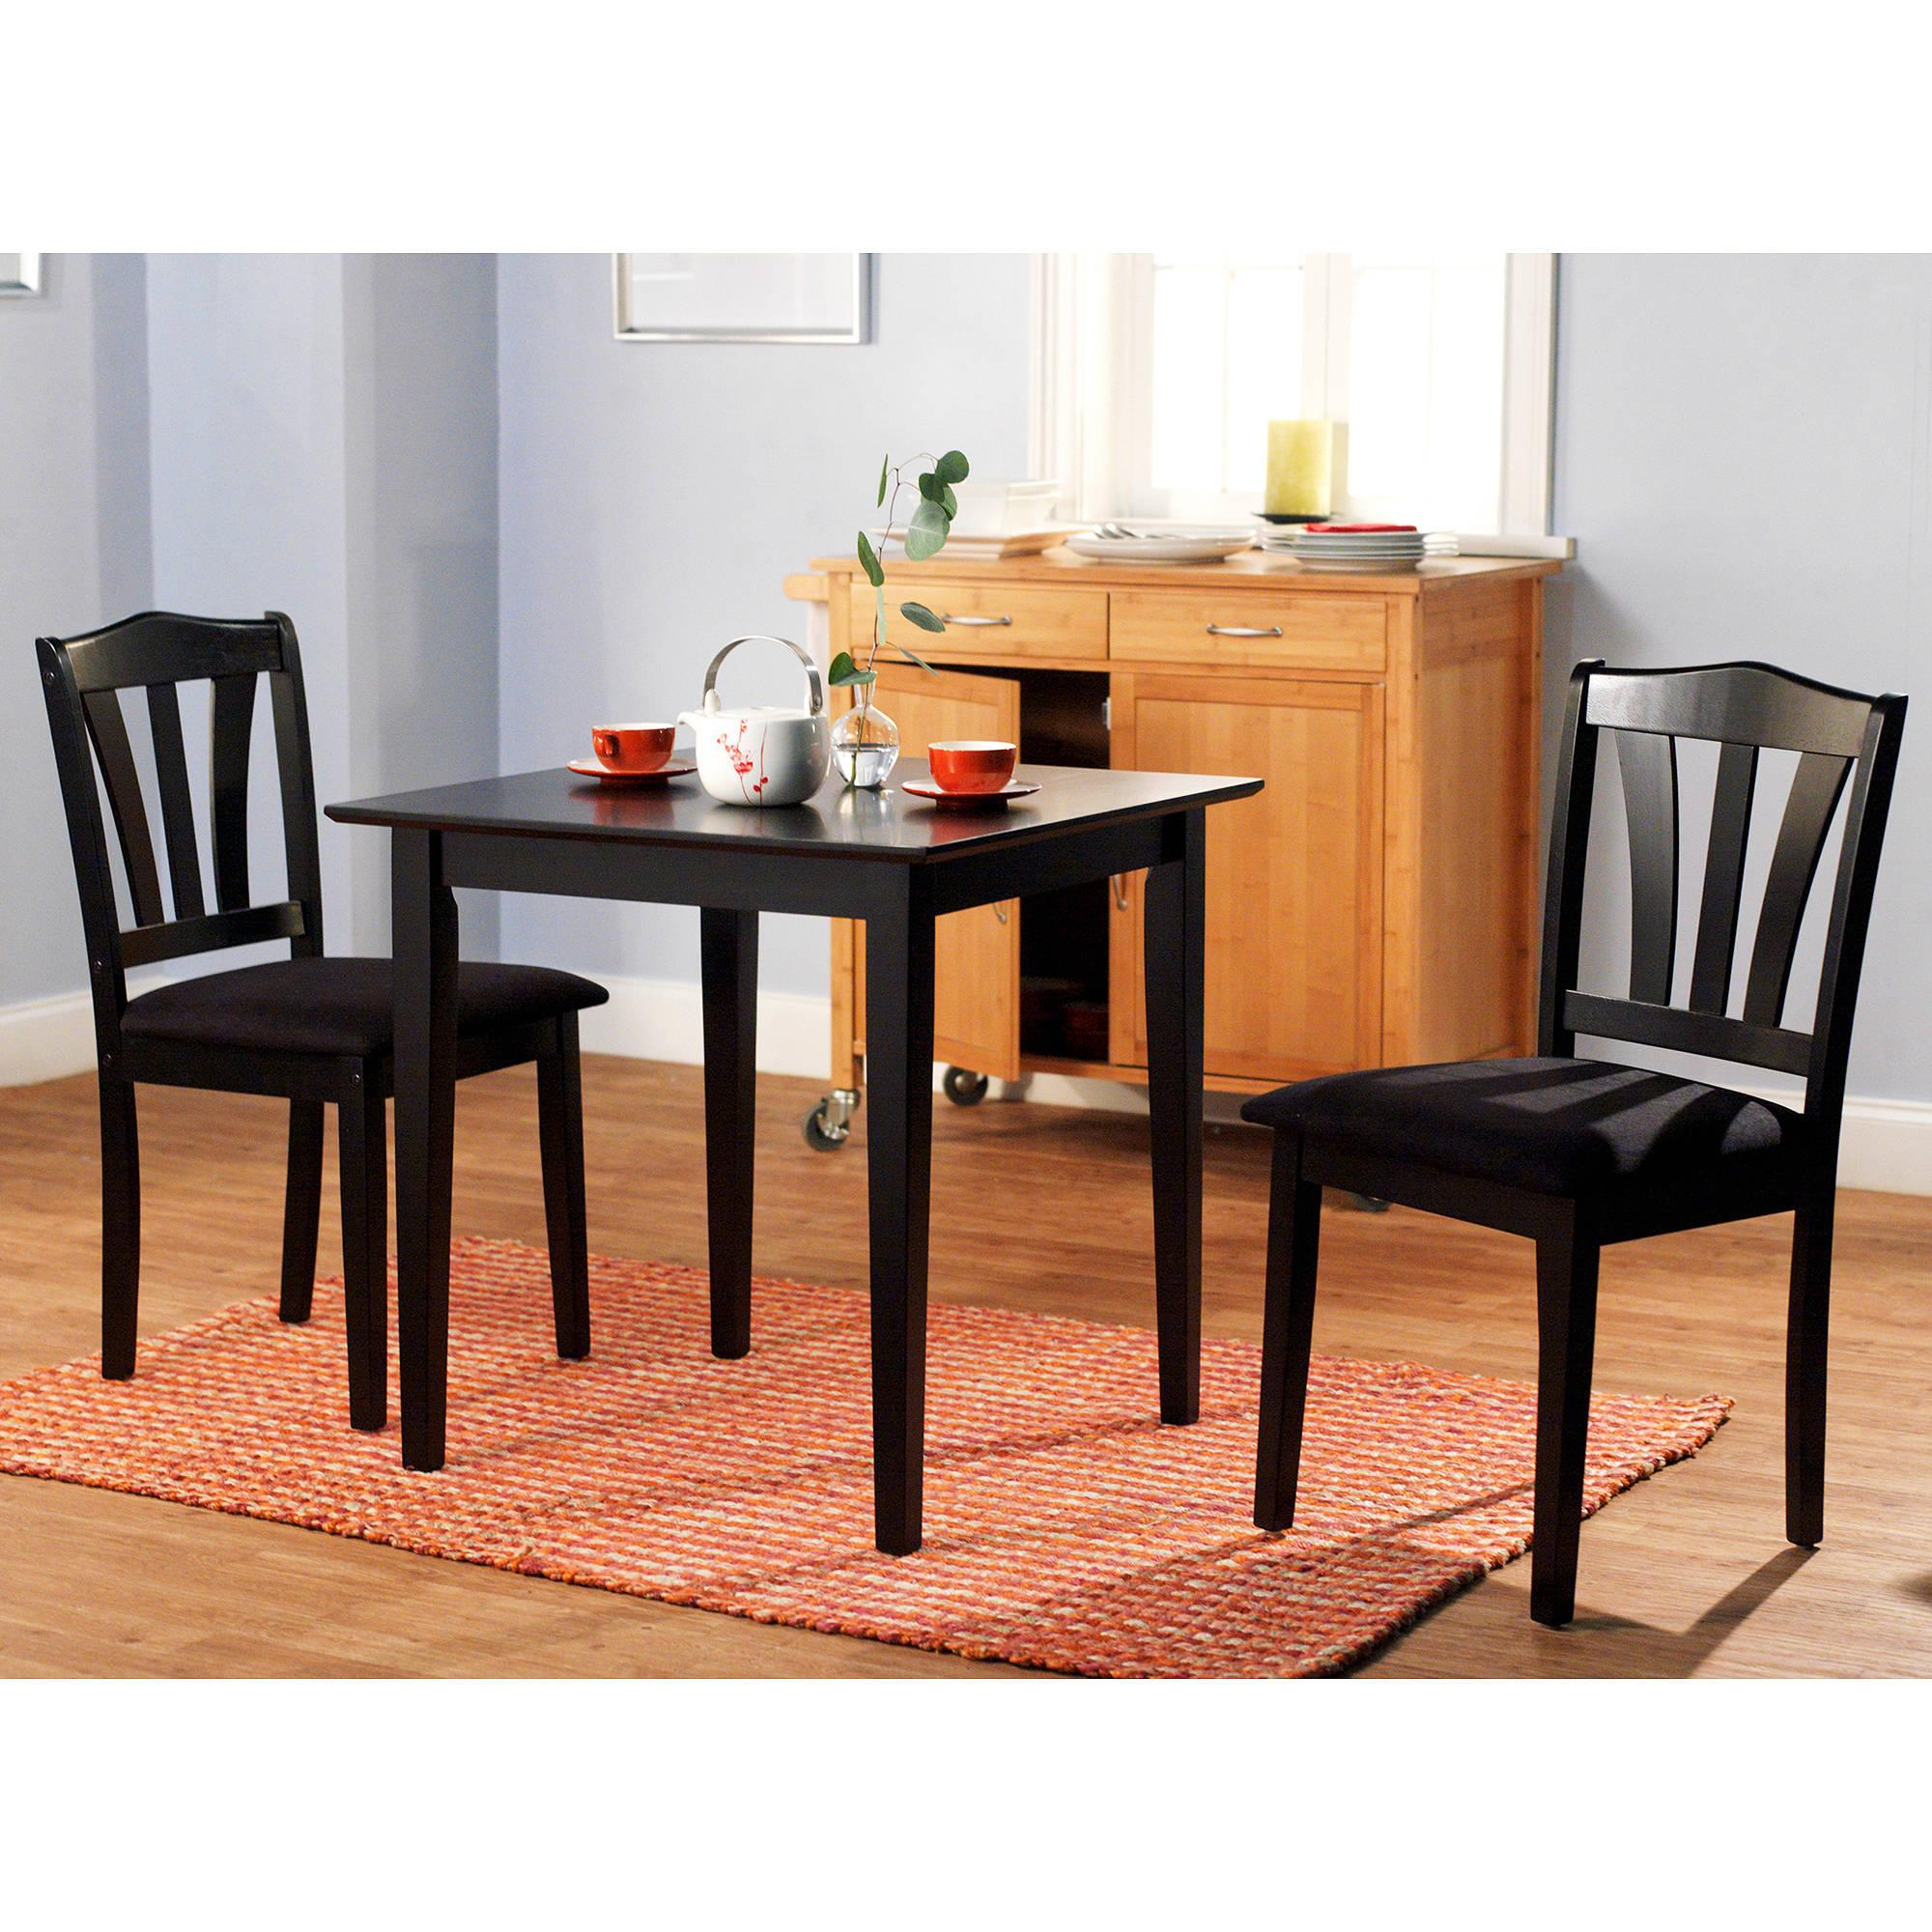 Modern Dining Set Details About 3 Piece Dining Set Table 2 Chairs Kitchen Room Wood Furniture Dinette Modern New